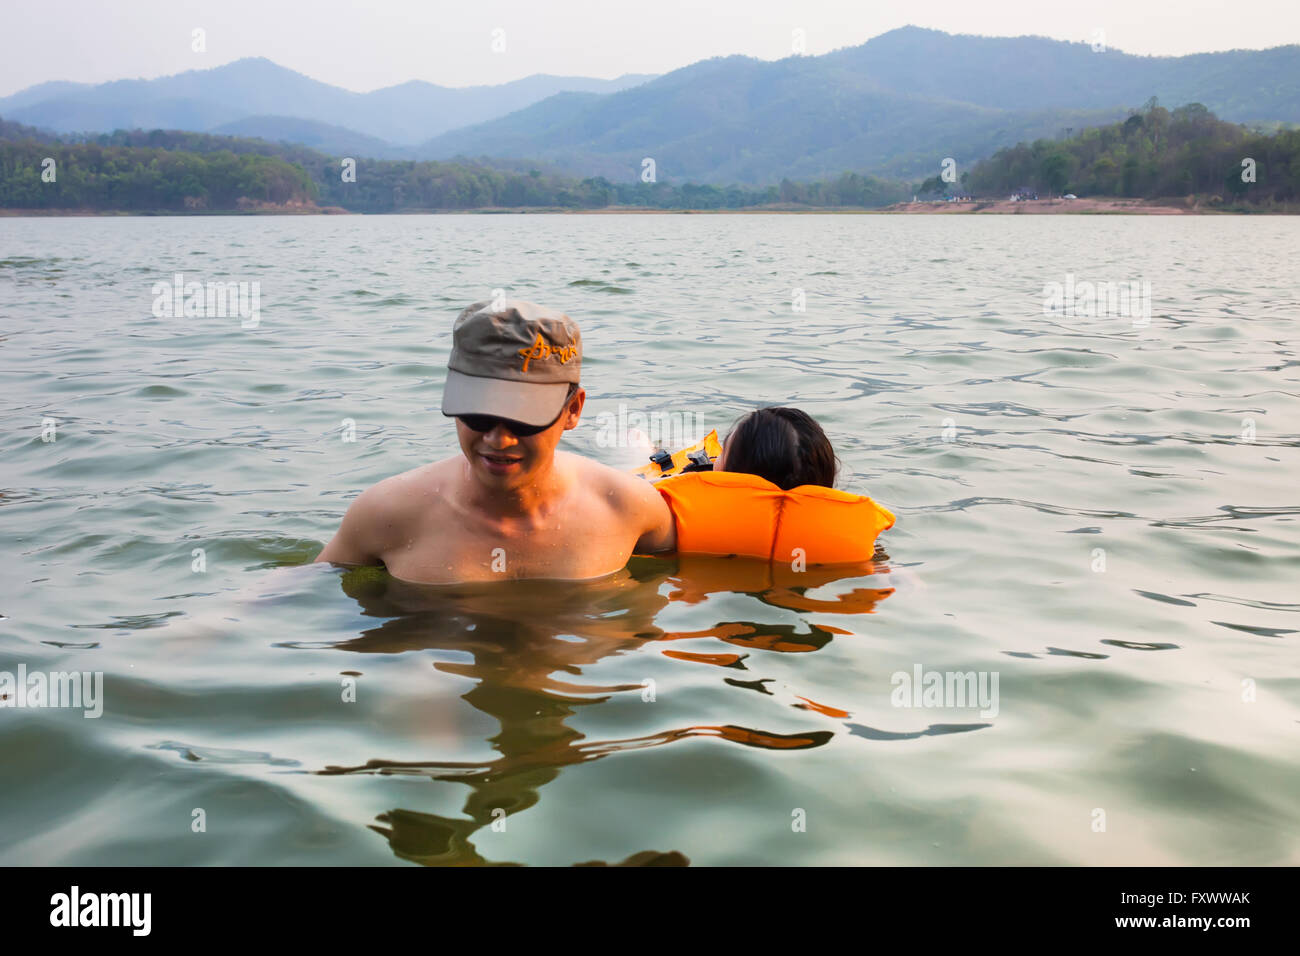 Phayao, Thailand - April 15, 2016. Man at river help women drowning due to water accidents by wearing a life jacket - Stock Image